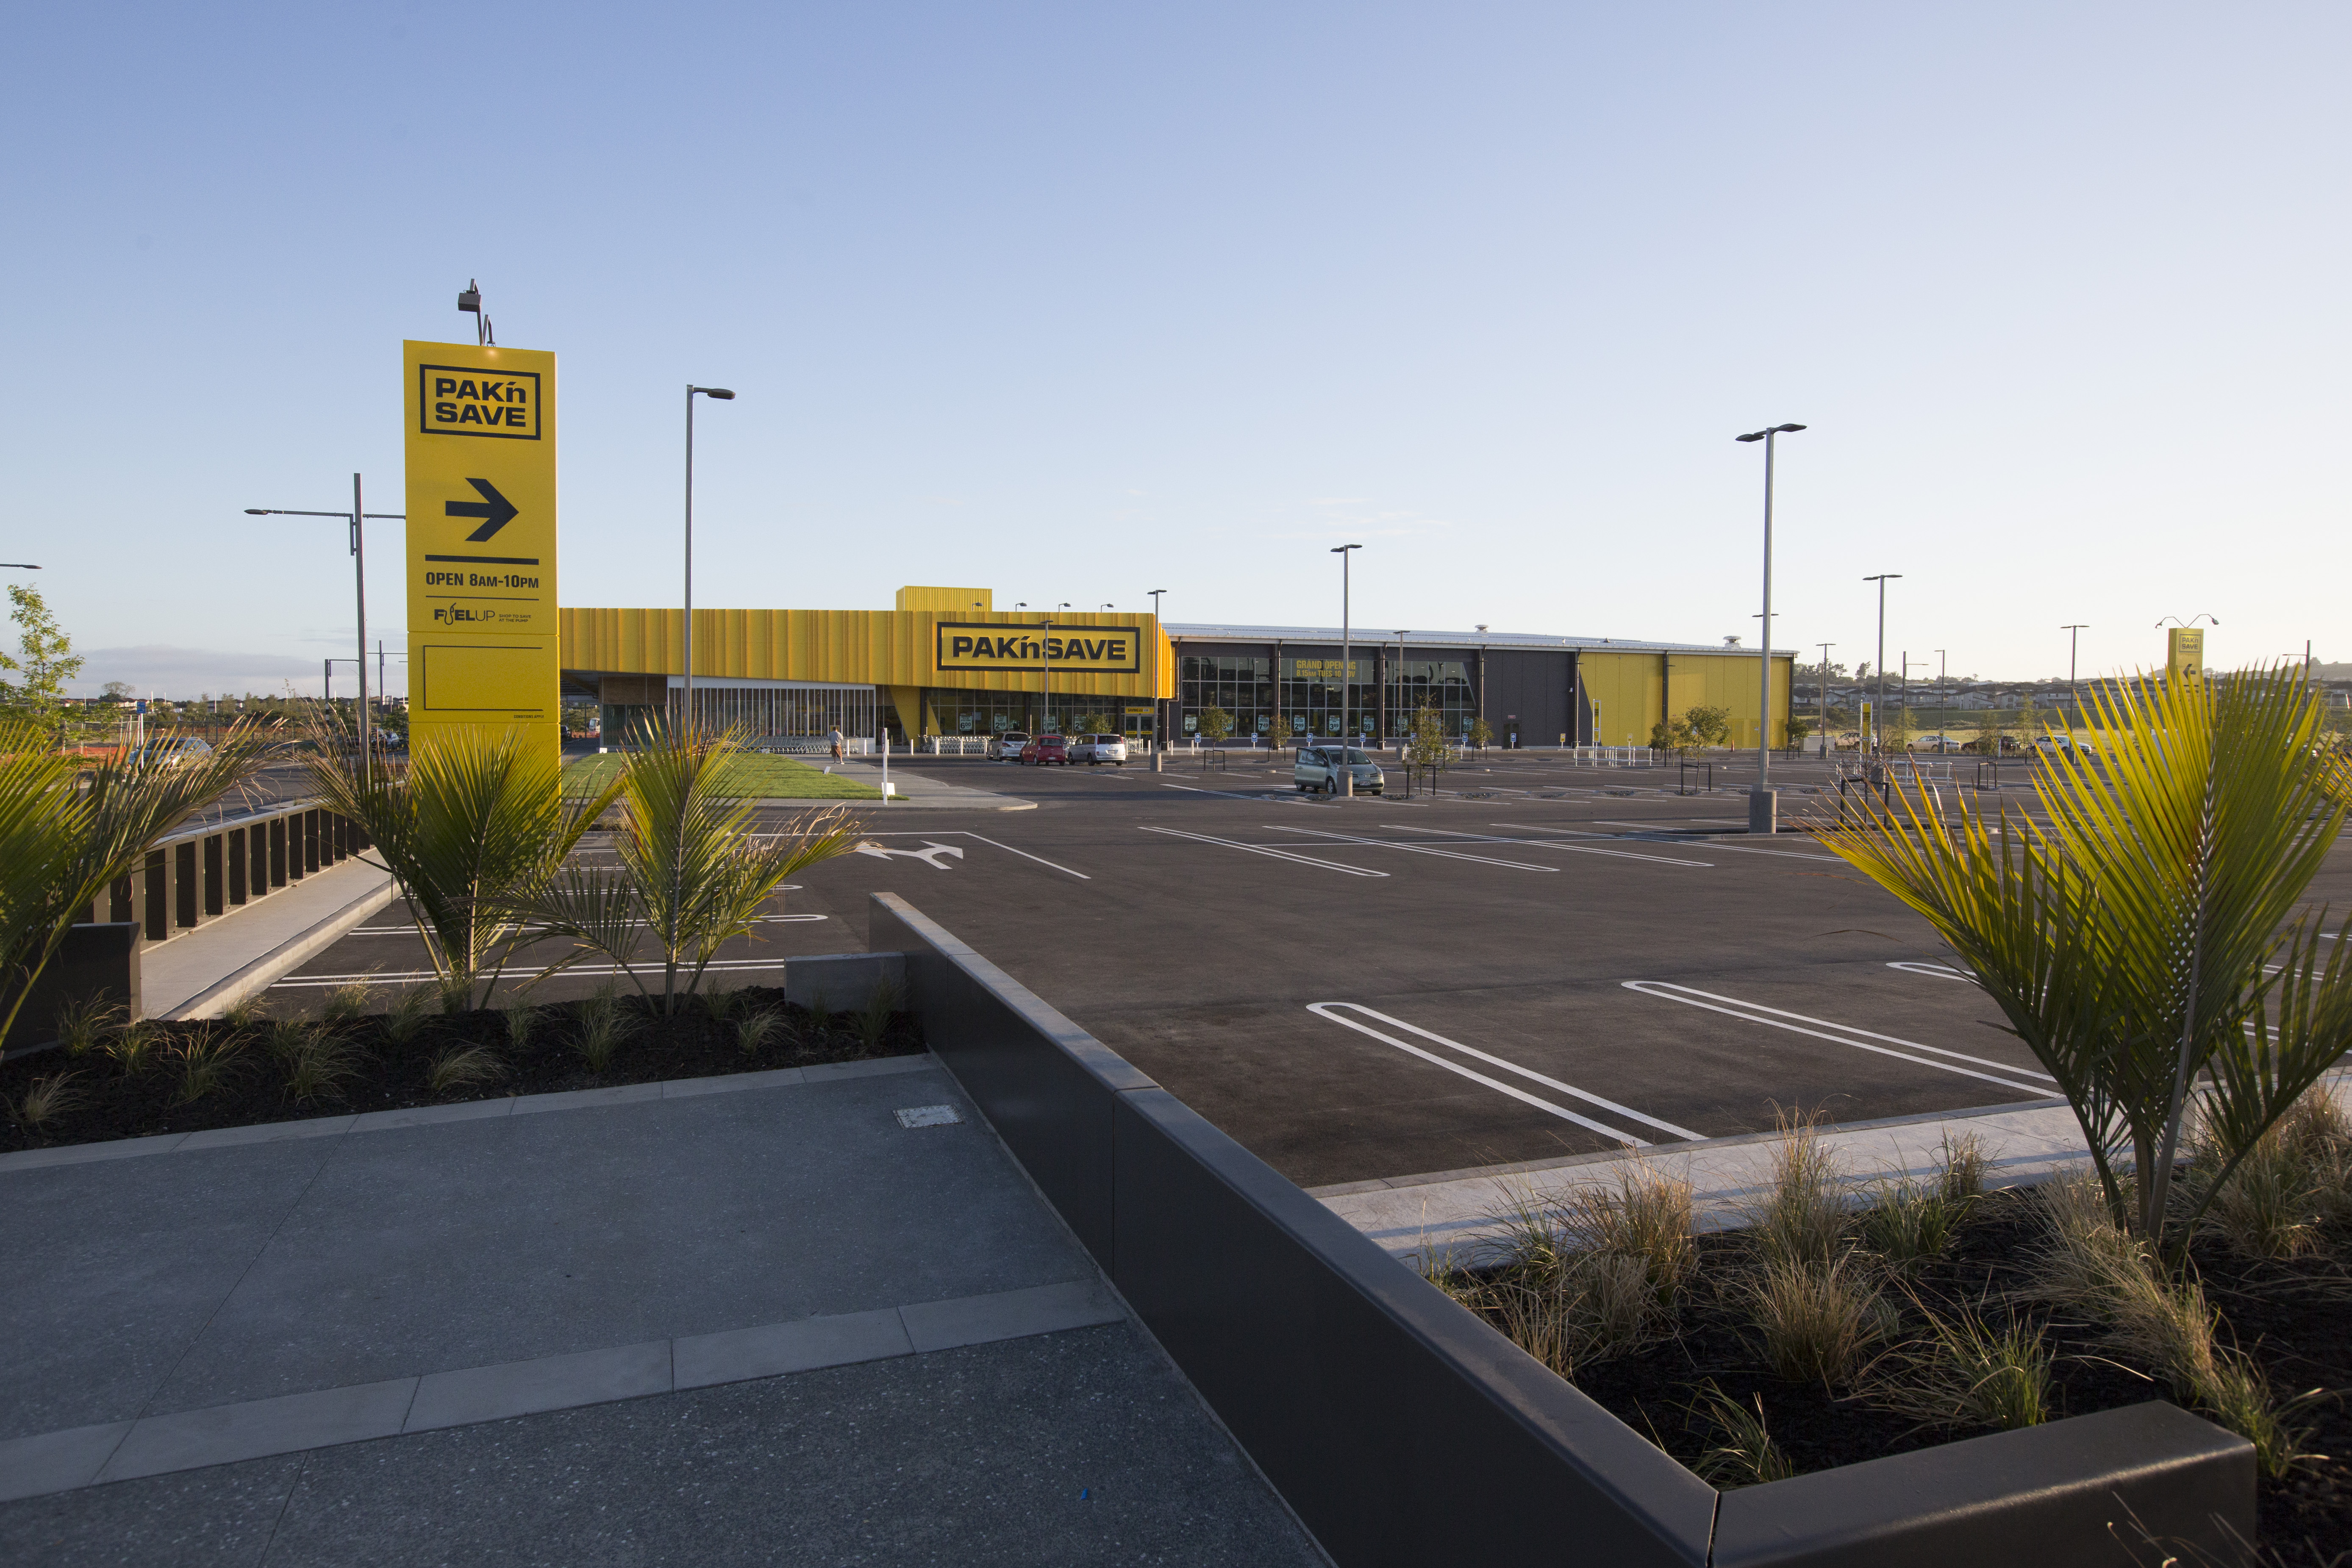 20151109_Ormiston PacknSave_097